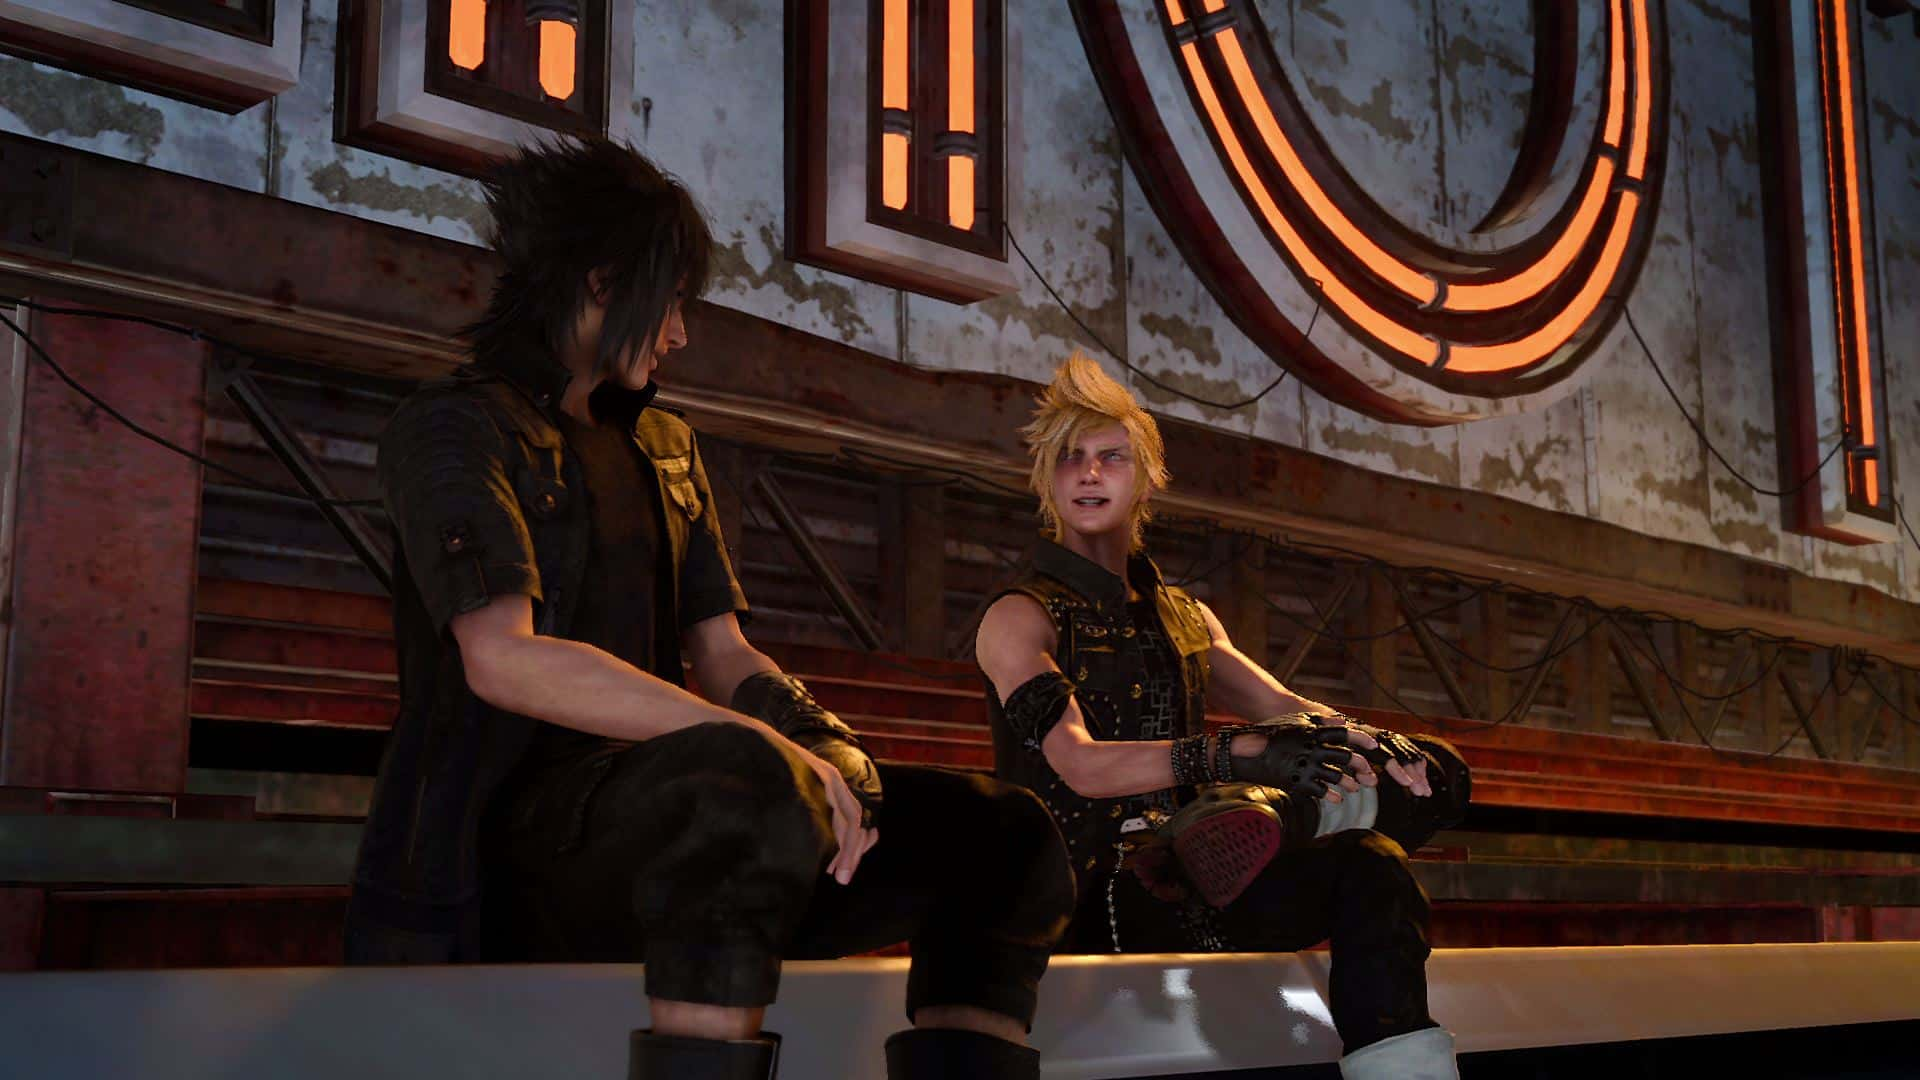 final fantasy xv is surprisingly good at teaching photography